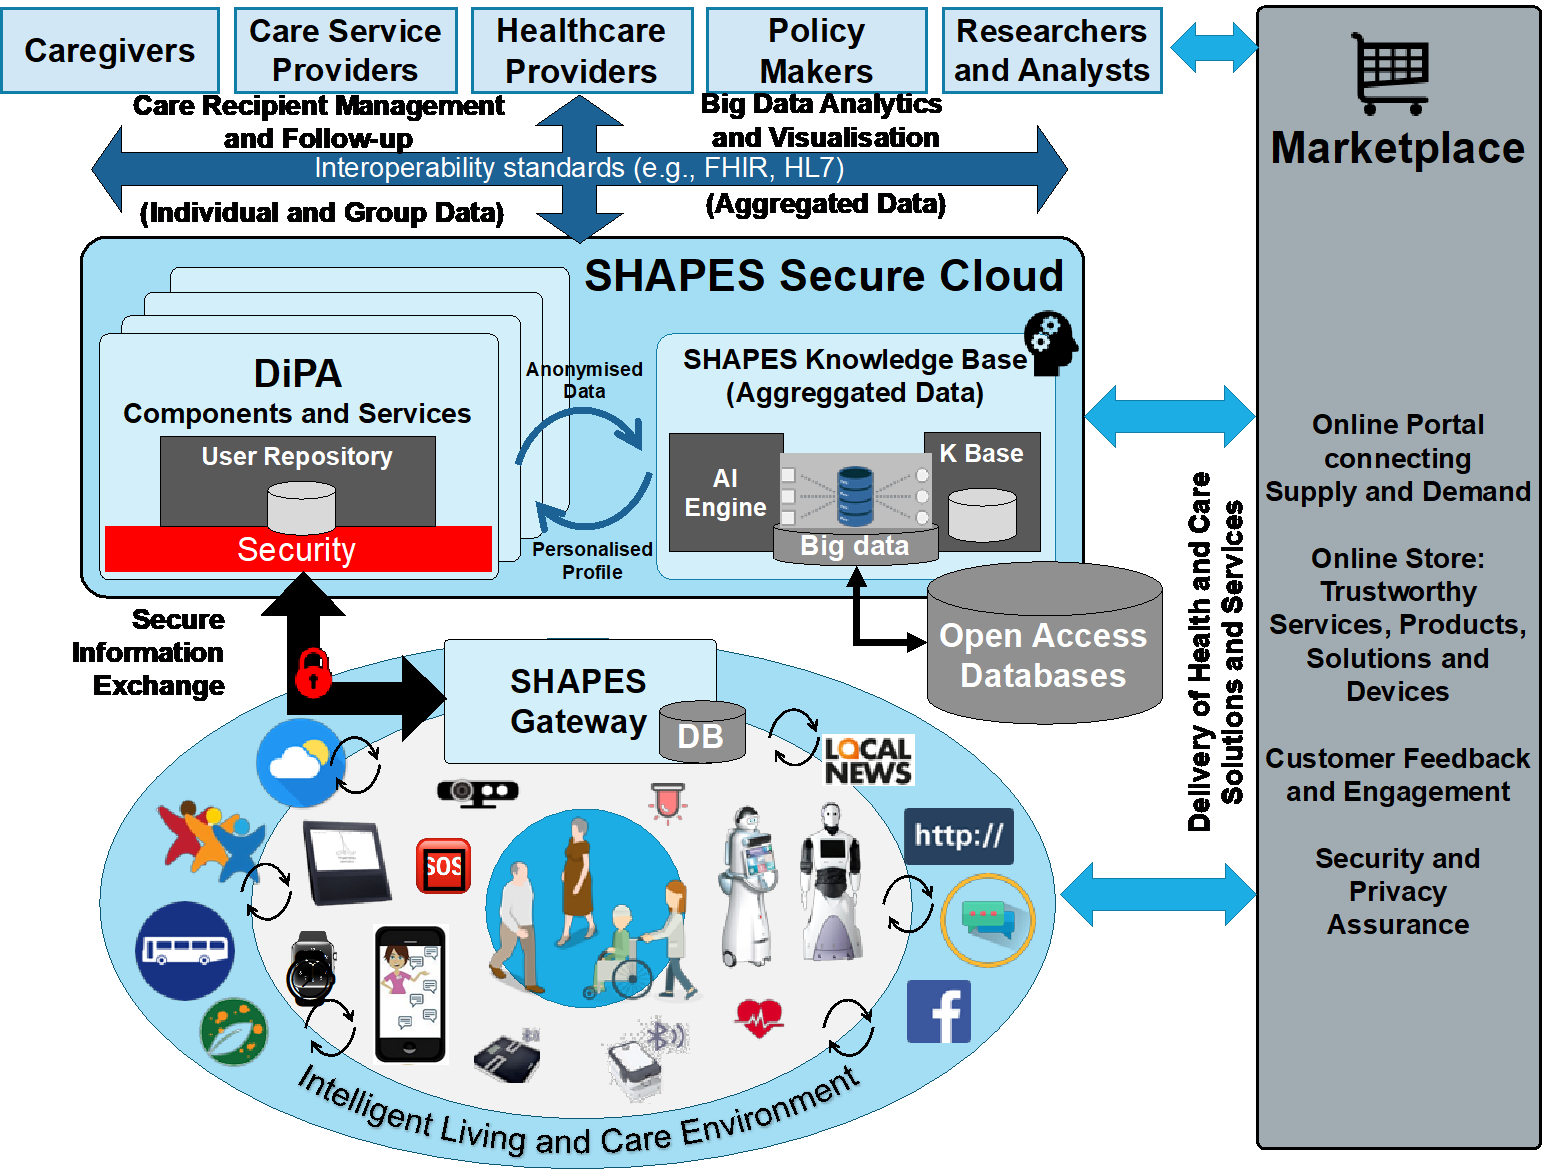 Diagram of how SHAPES works: gateway talks to marketplace, feeds information into the secure cloud (user repository and knowledge base), which also interacts with marketplace. This information is shared with carers, healthcare providers, researchers and policy makers